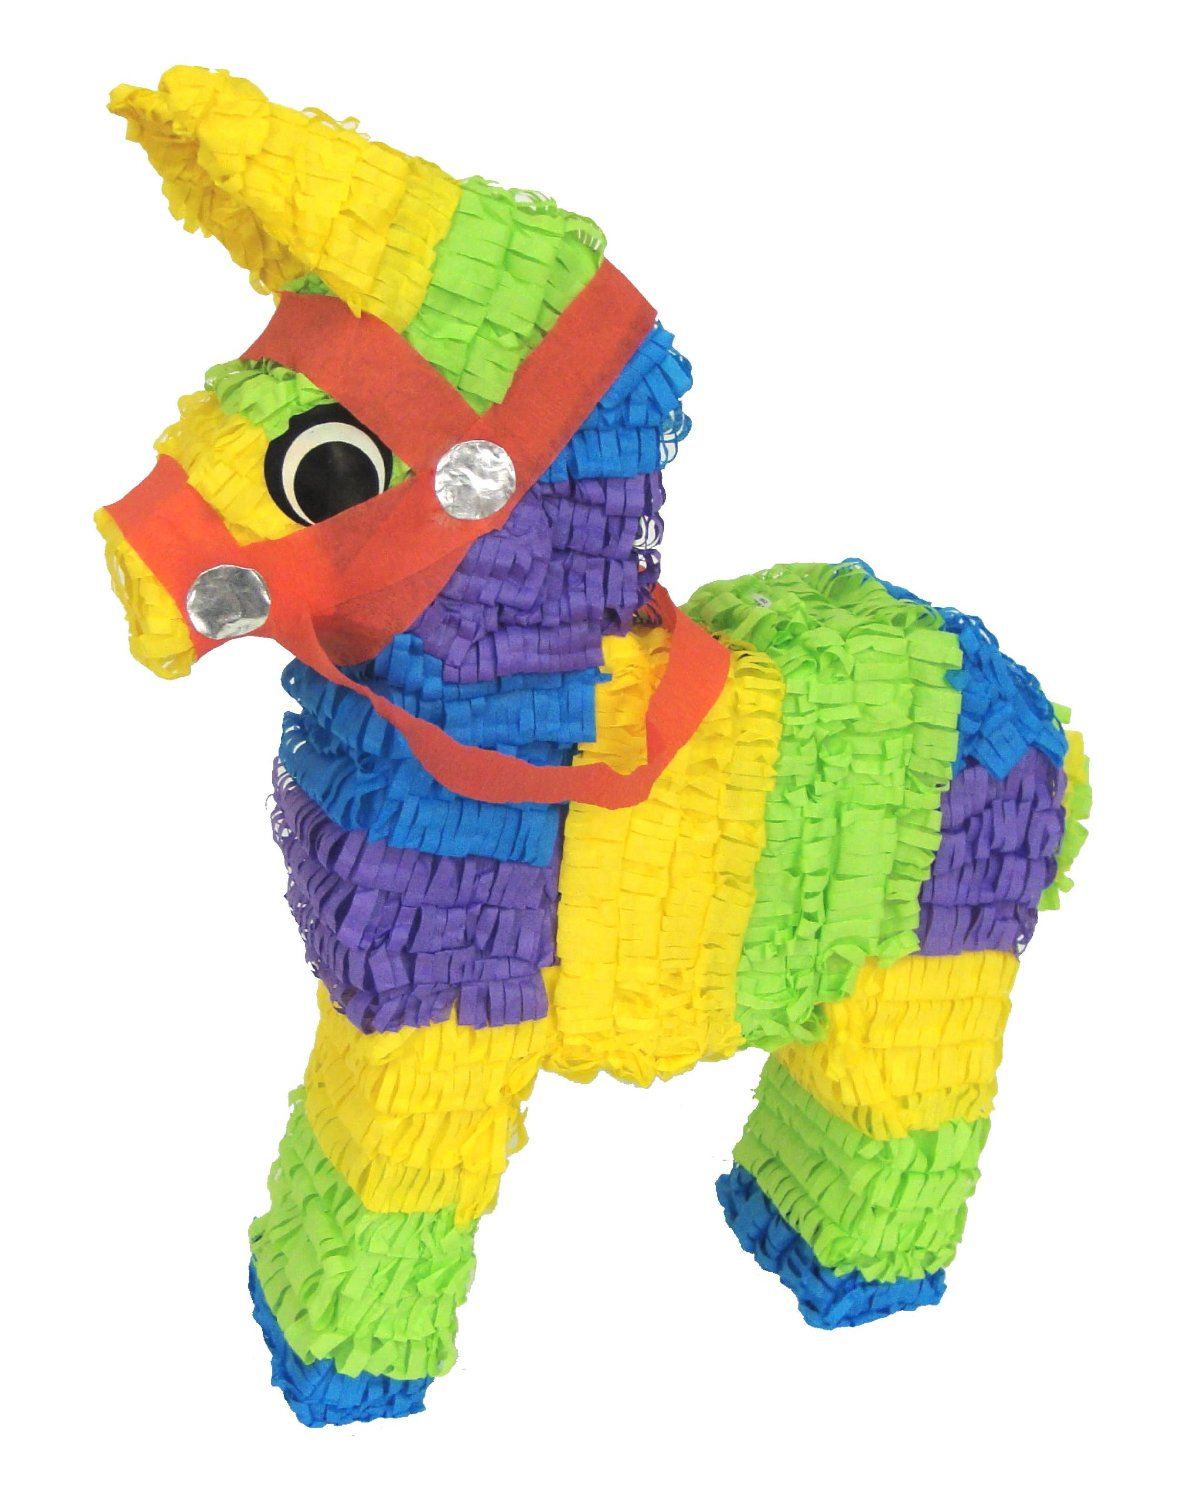 Charlene's Piñata Theory – Talk Yourself Into Doing Anything! The Key Is In The Stuffing!!